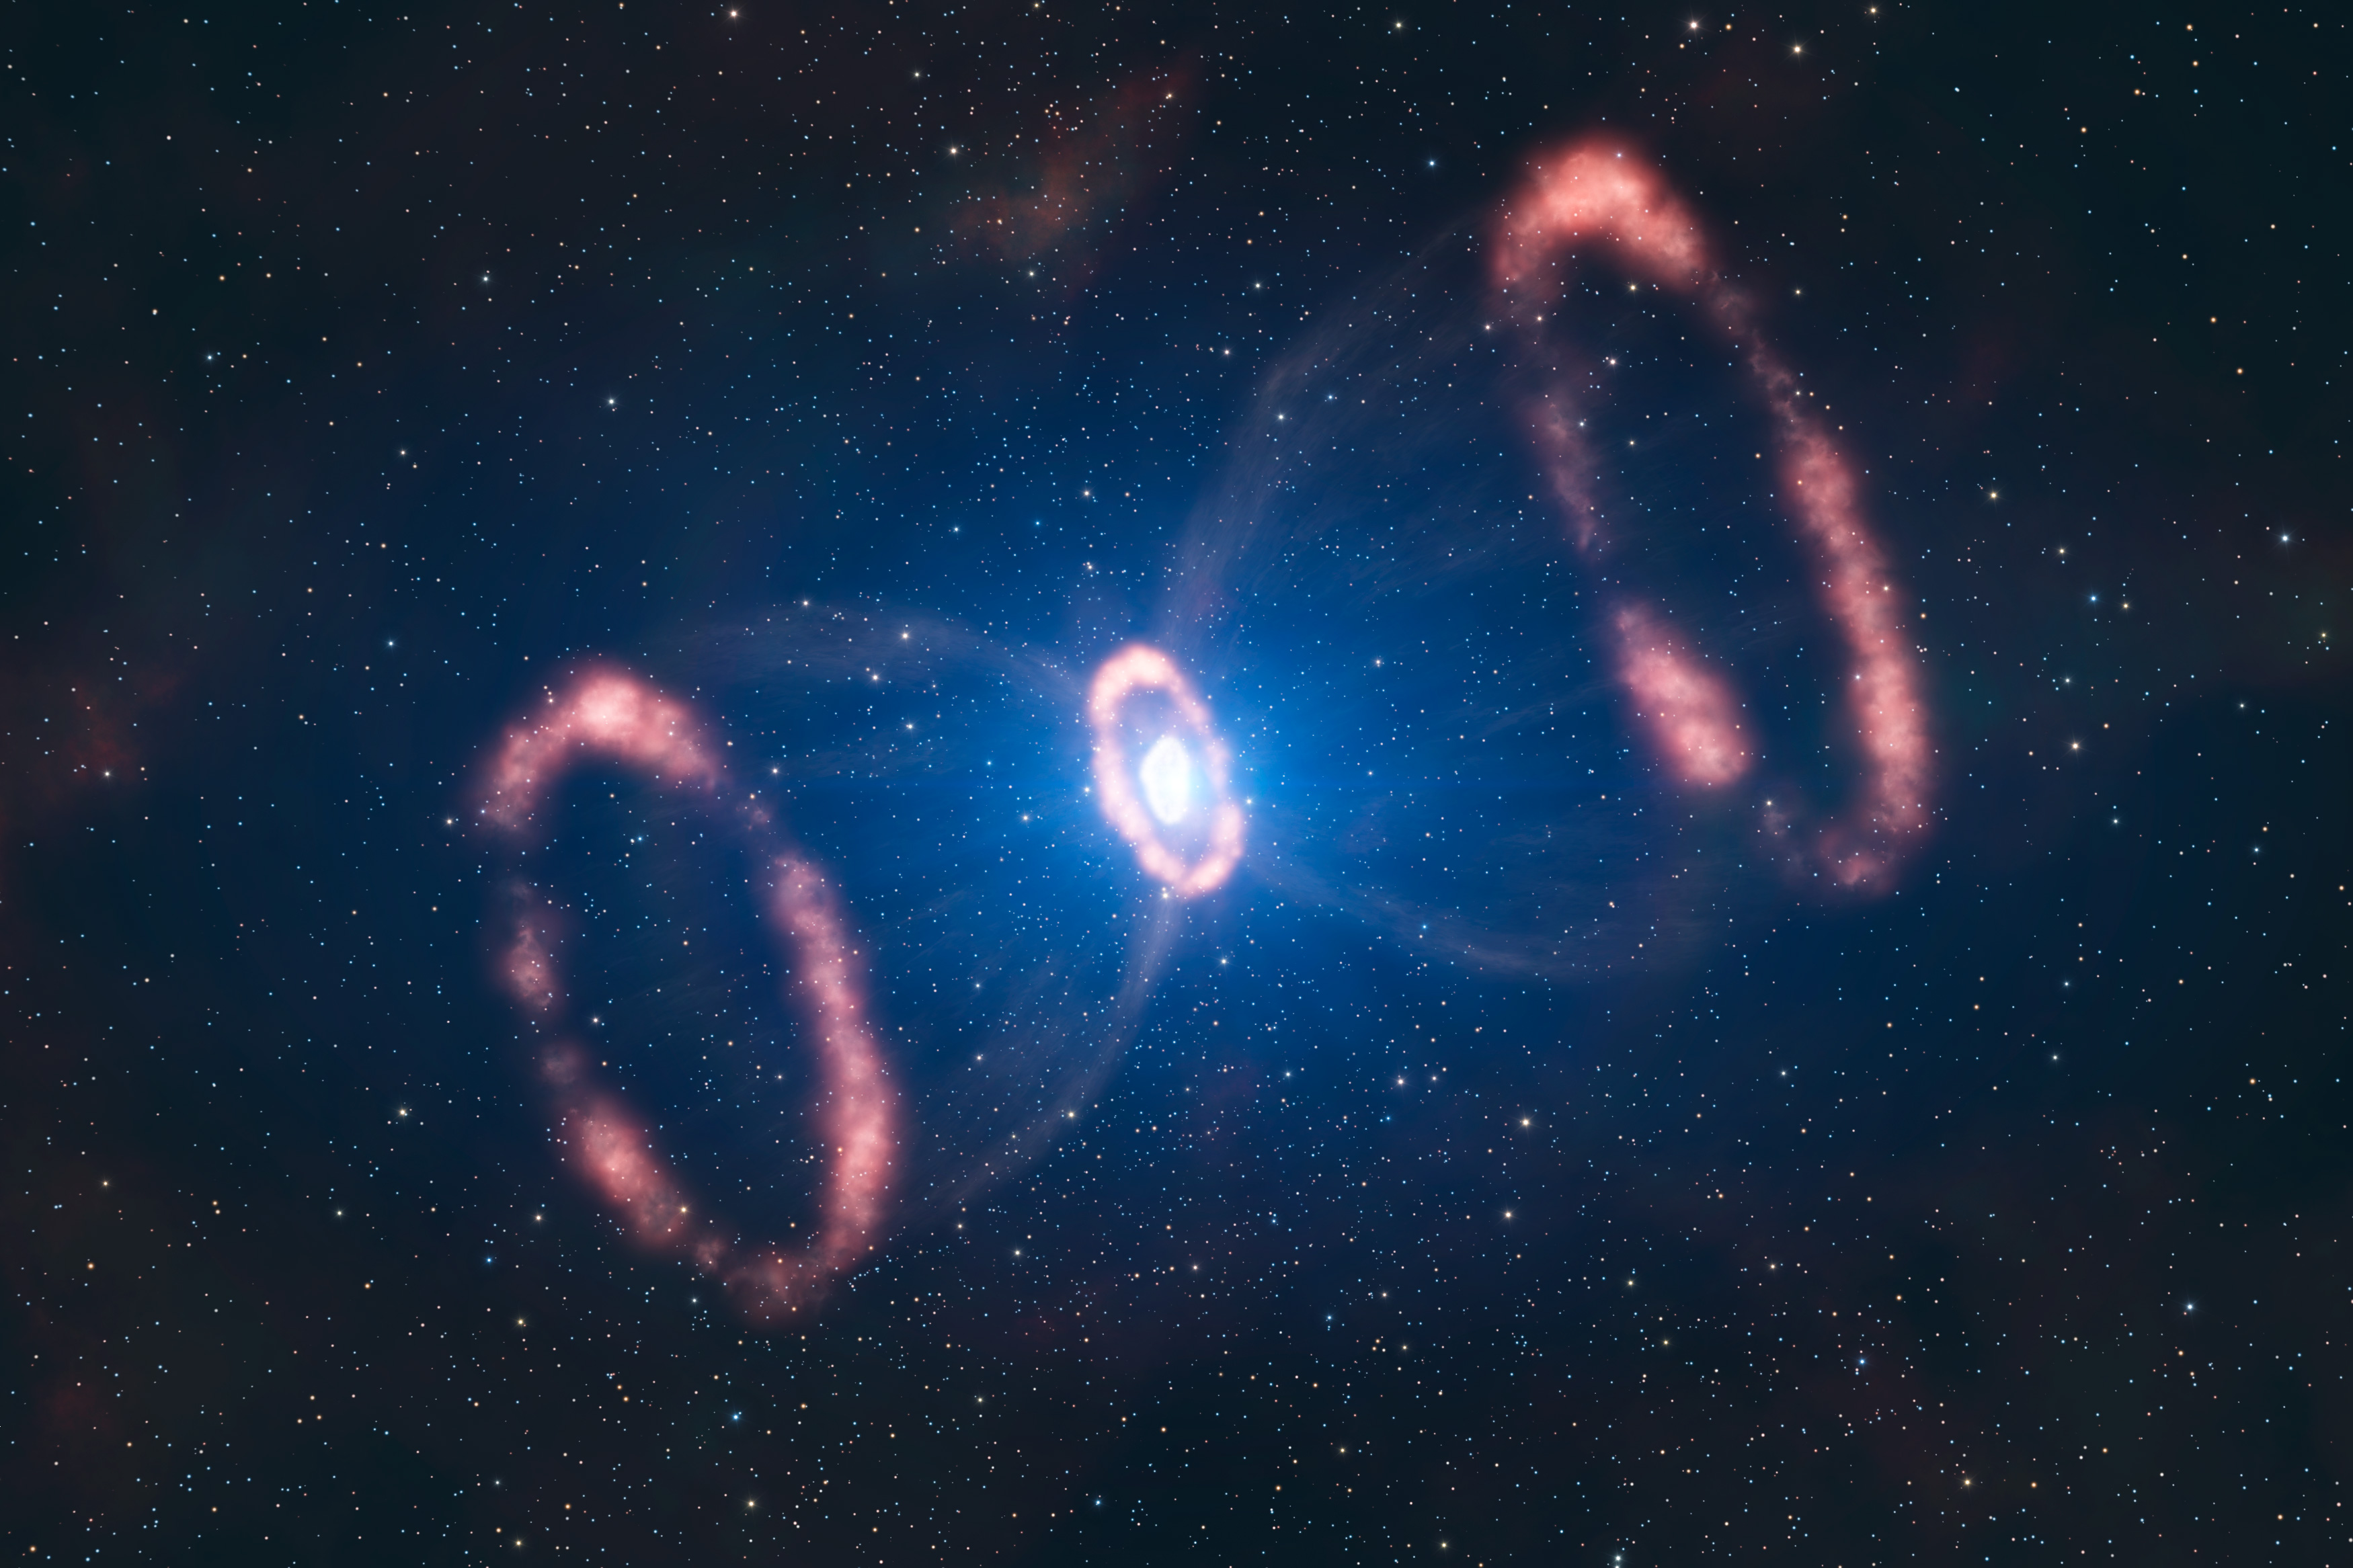 The remnants of a supernova found in 1987